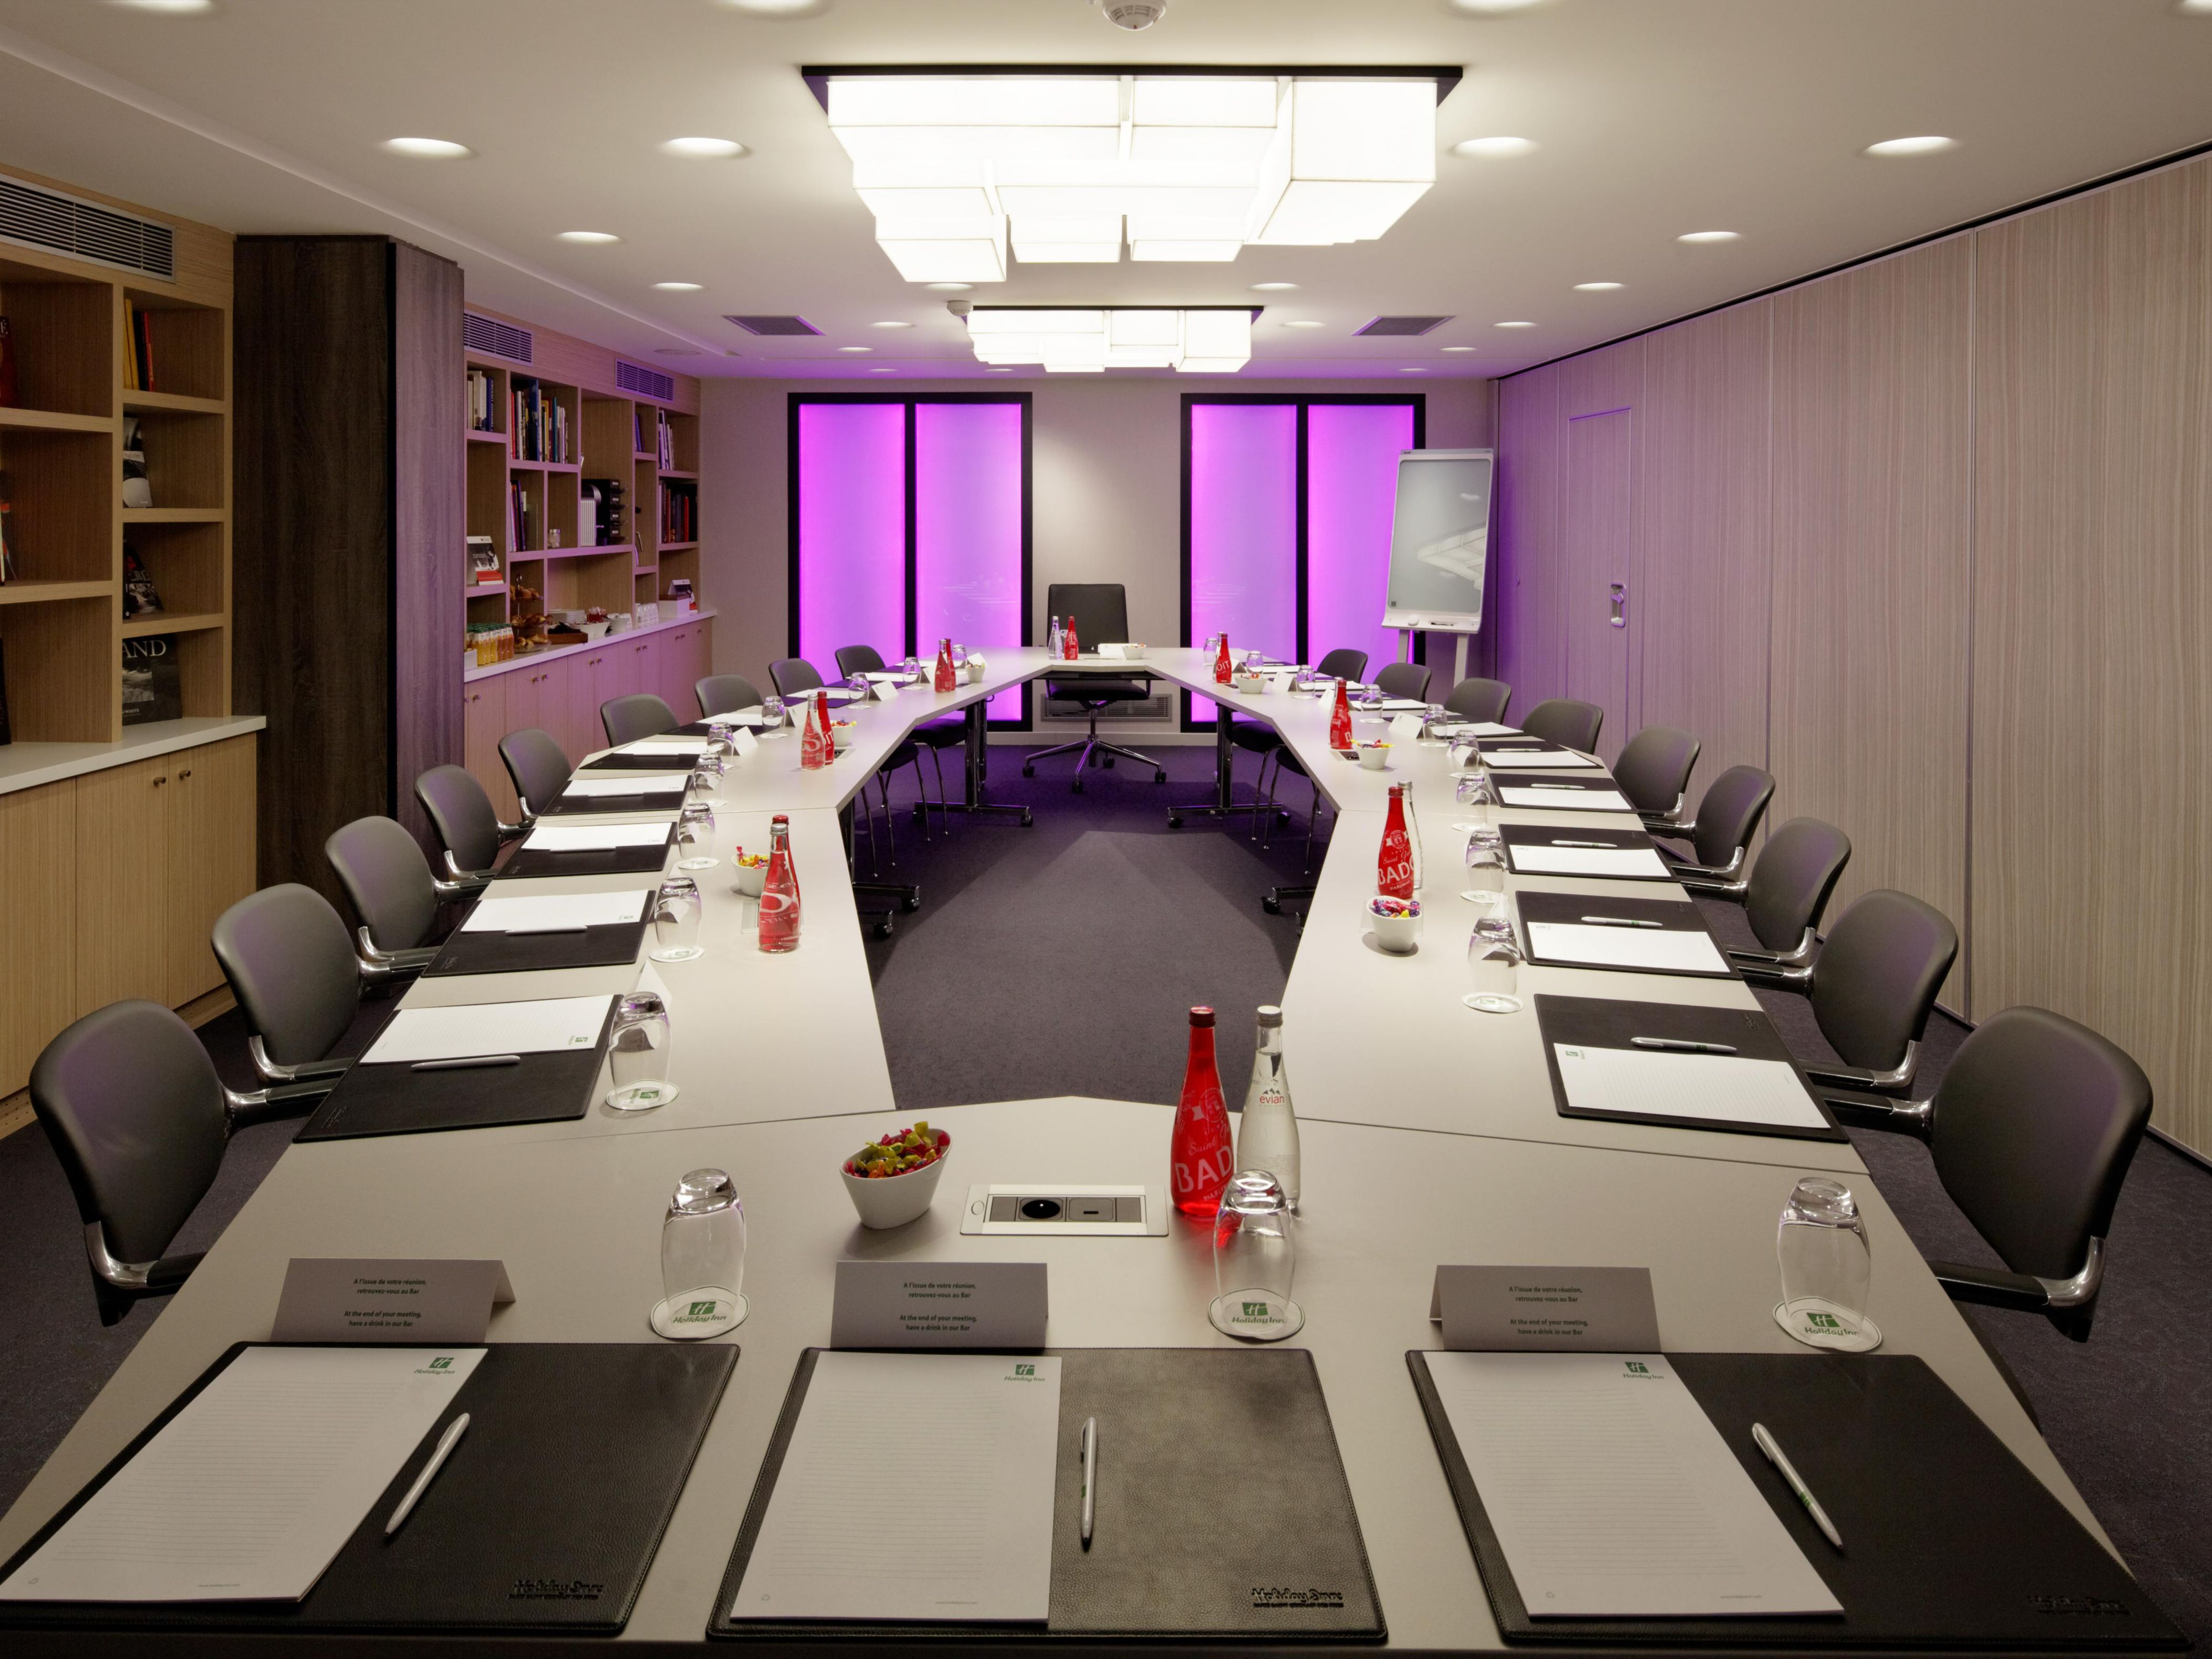 Meeting Room 'Descartes' with Living Colors Lighting System